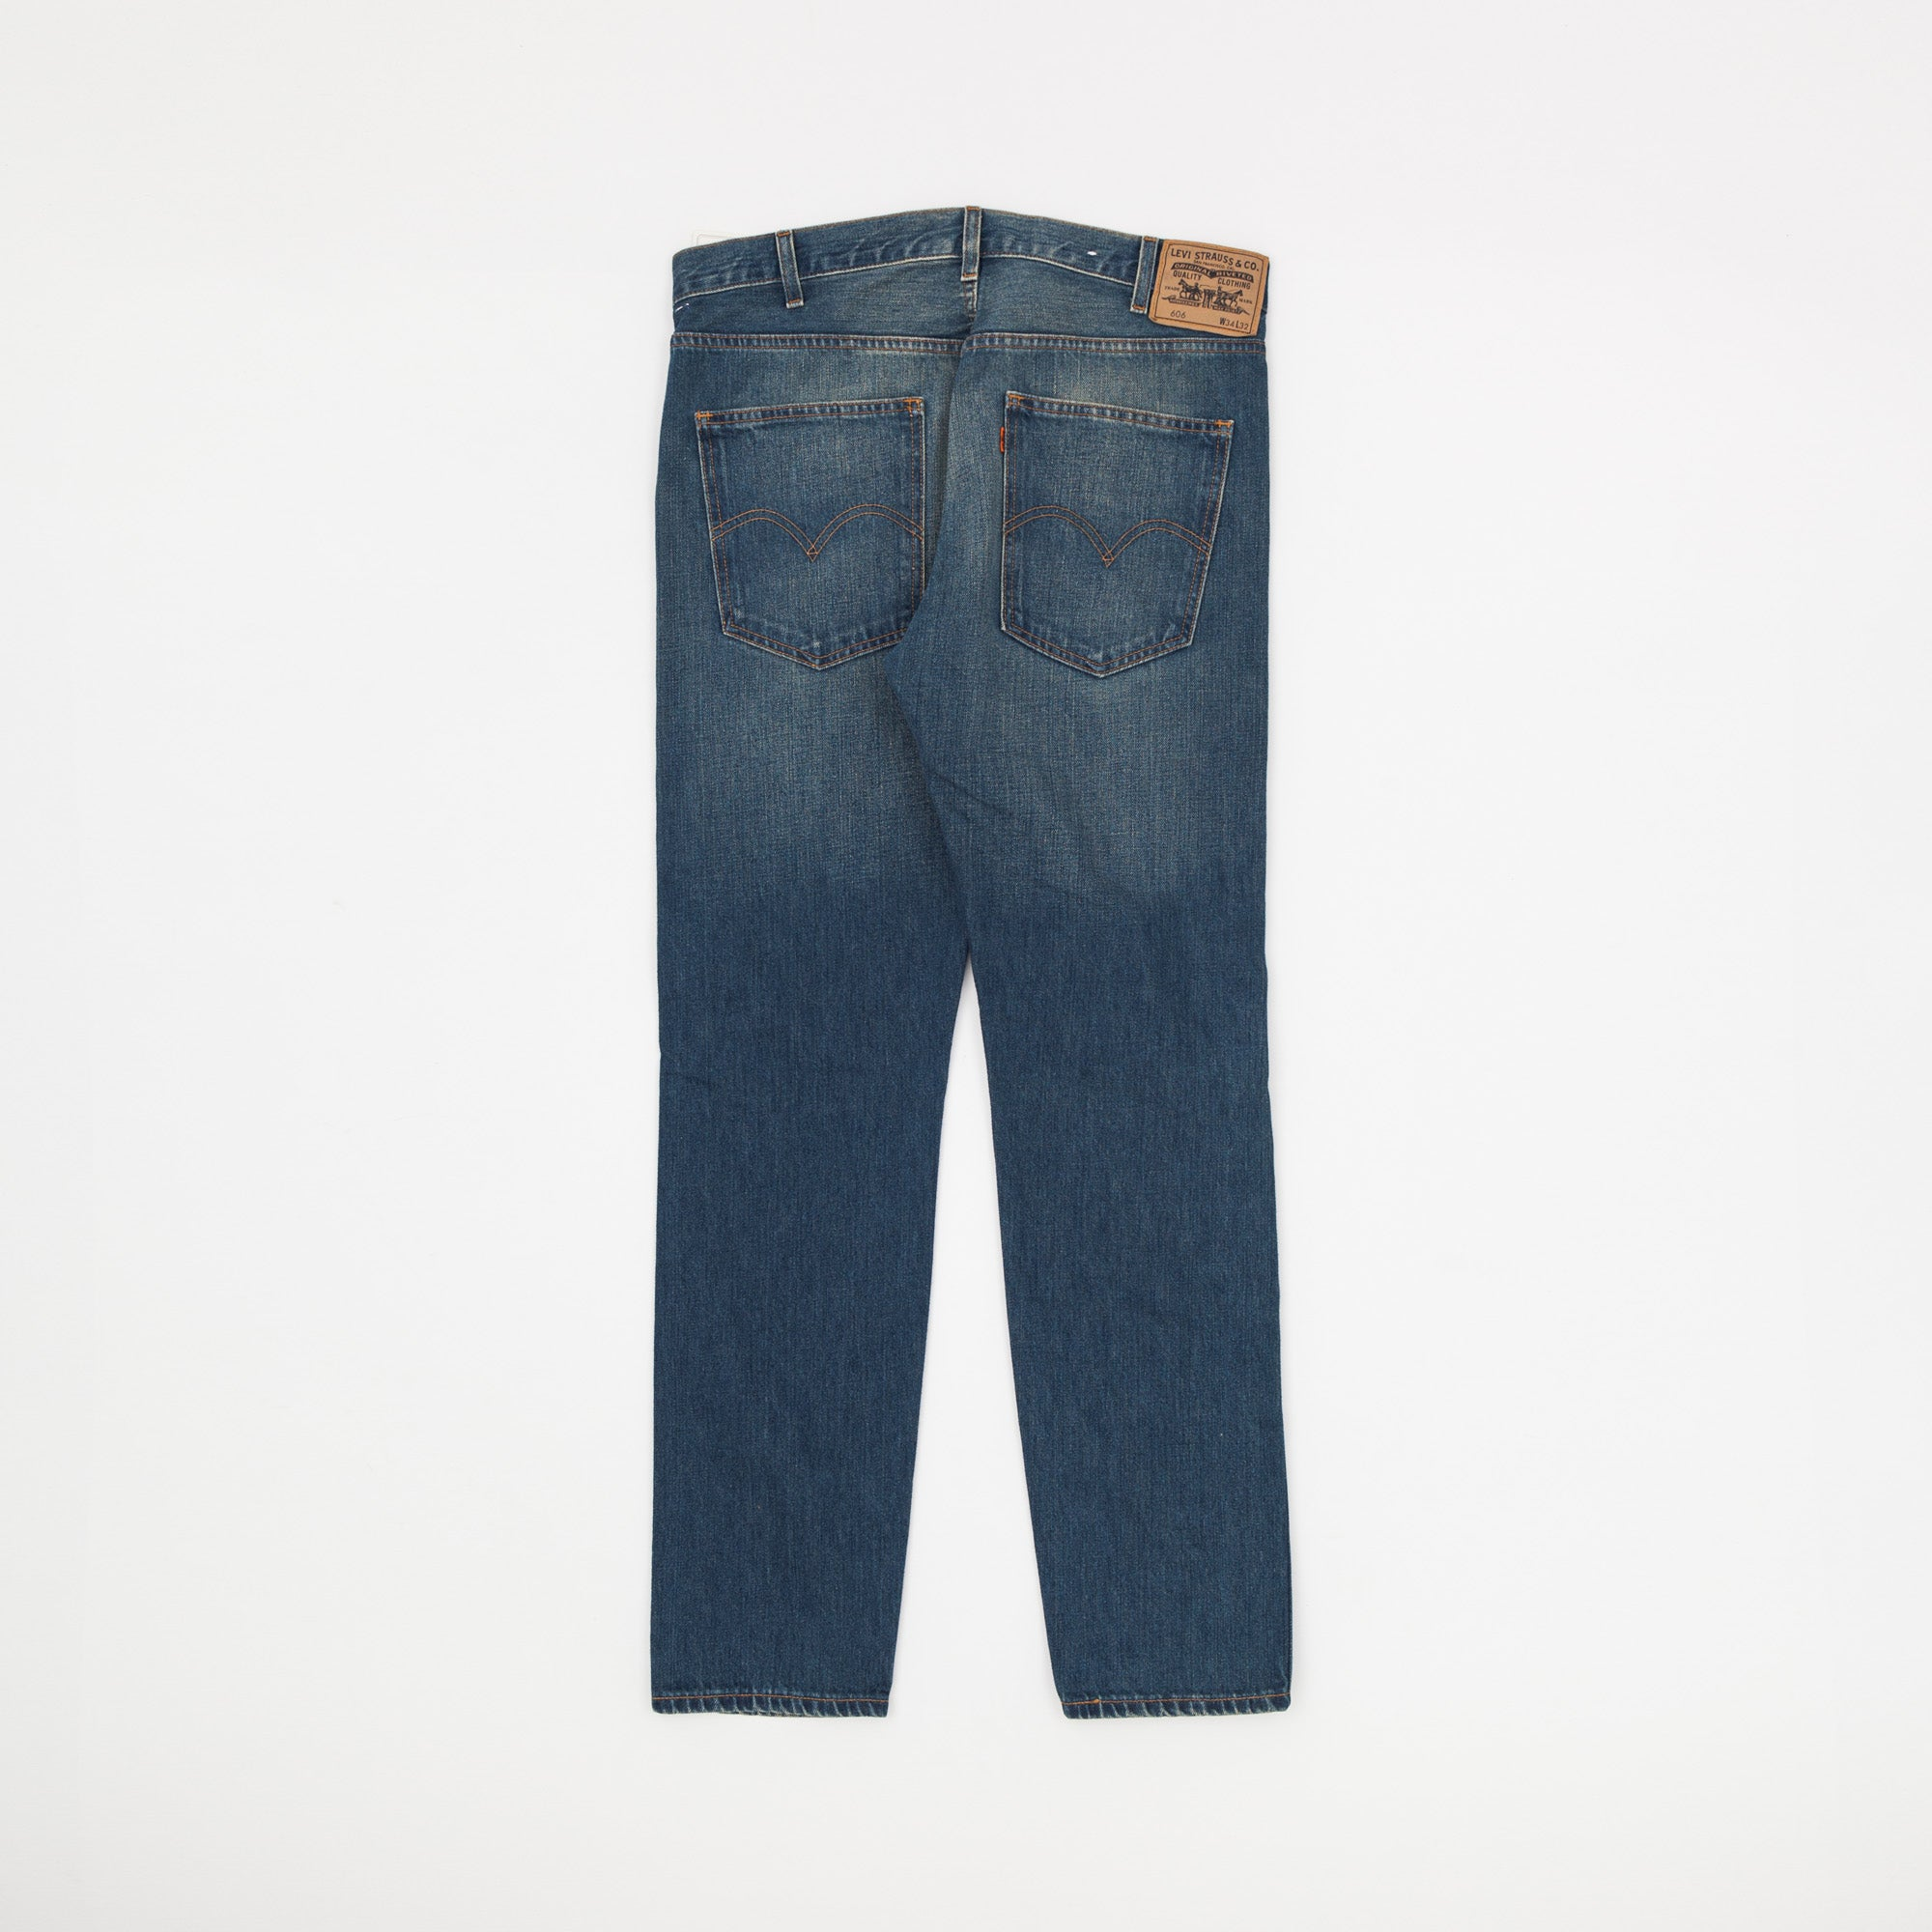 LVC Lot 606 1969 Denim